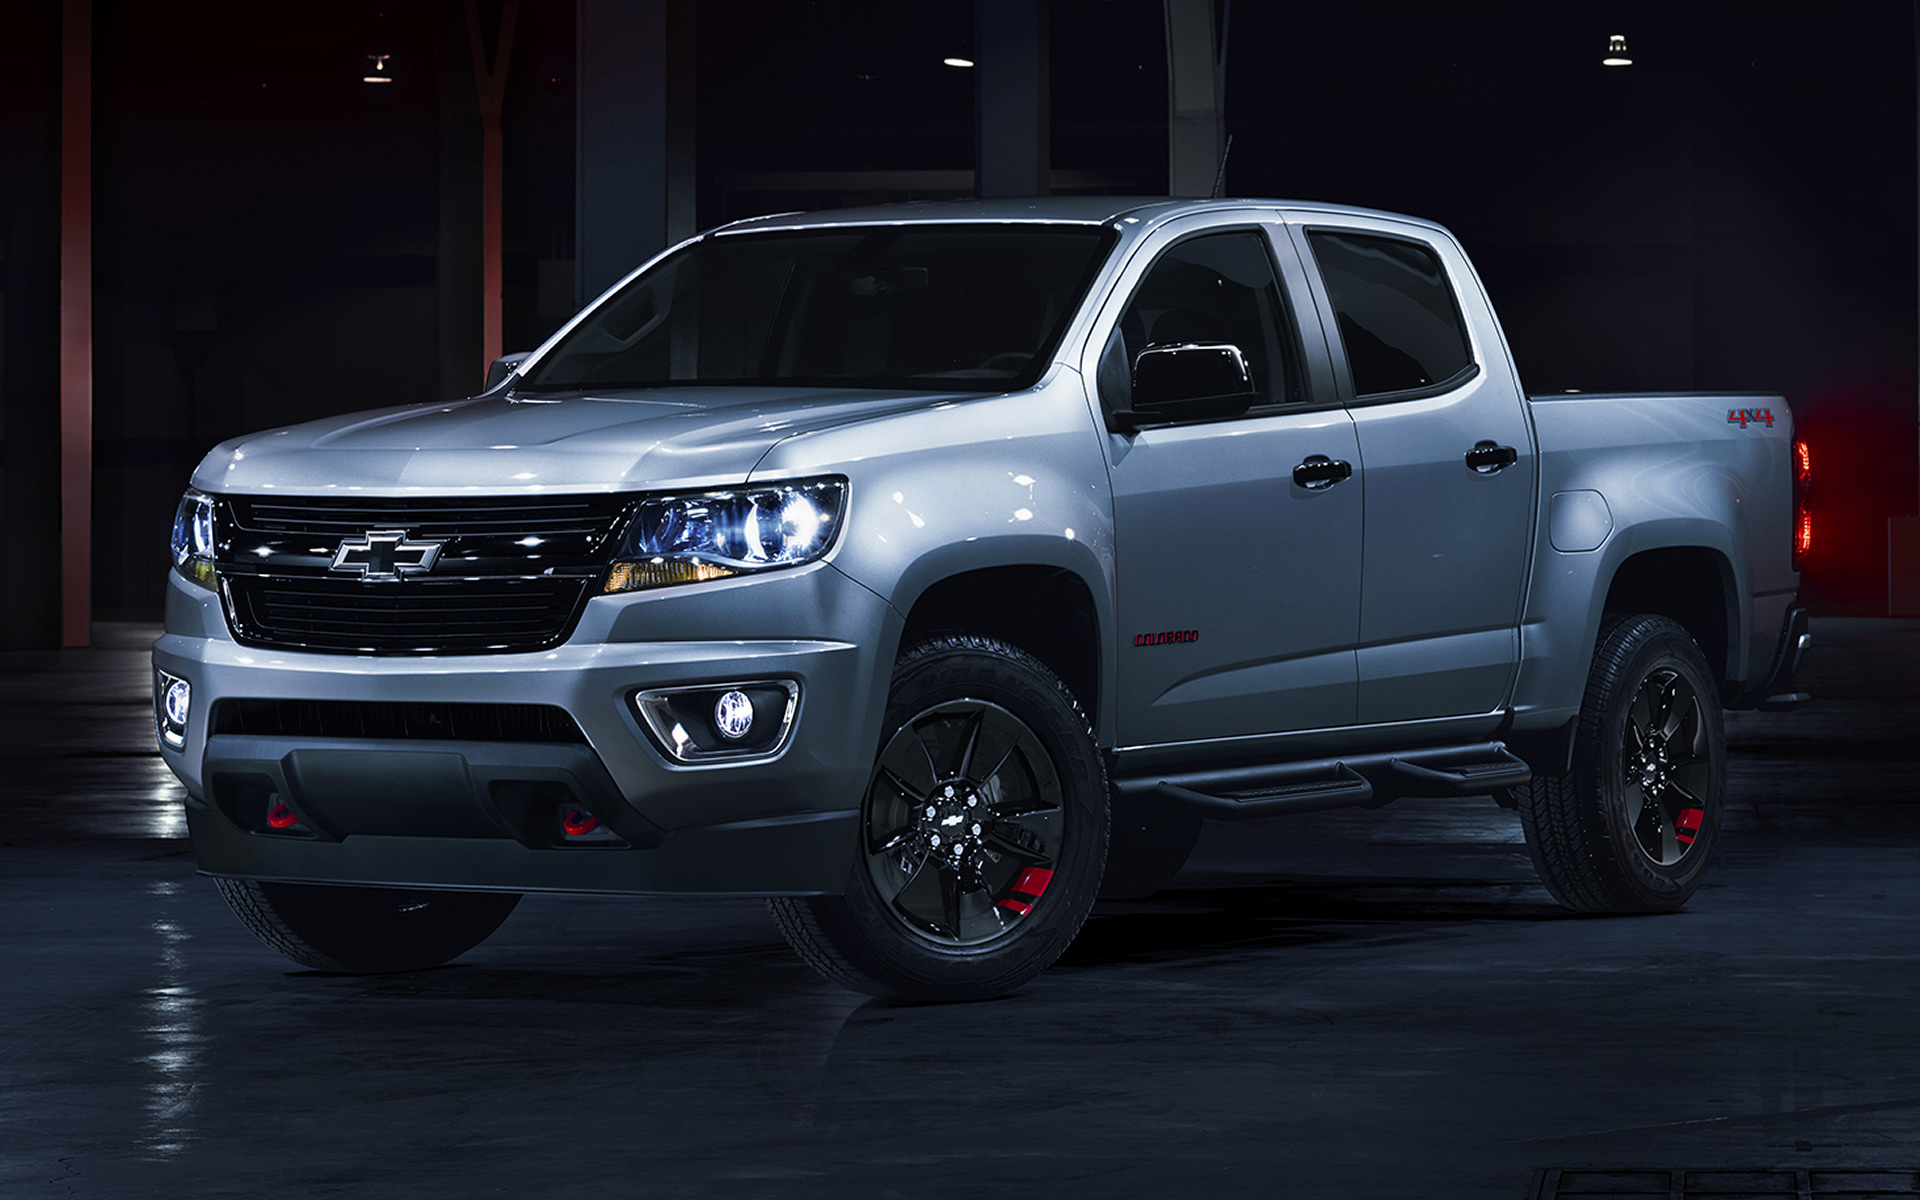 2017 Chevrolet Colorado Redline Crew Cab - Wallpapers and ...